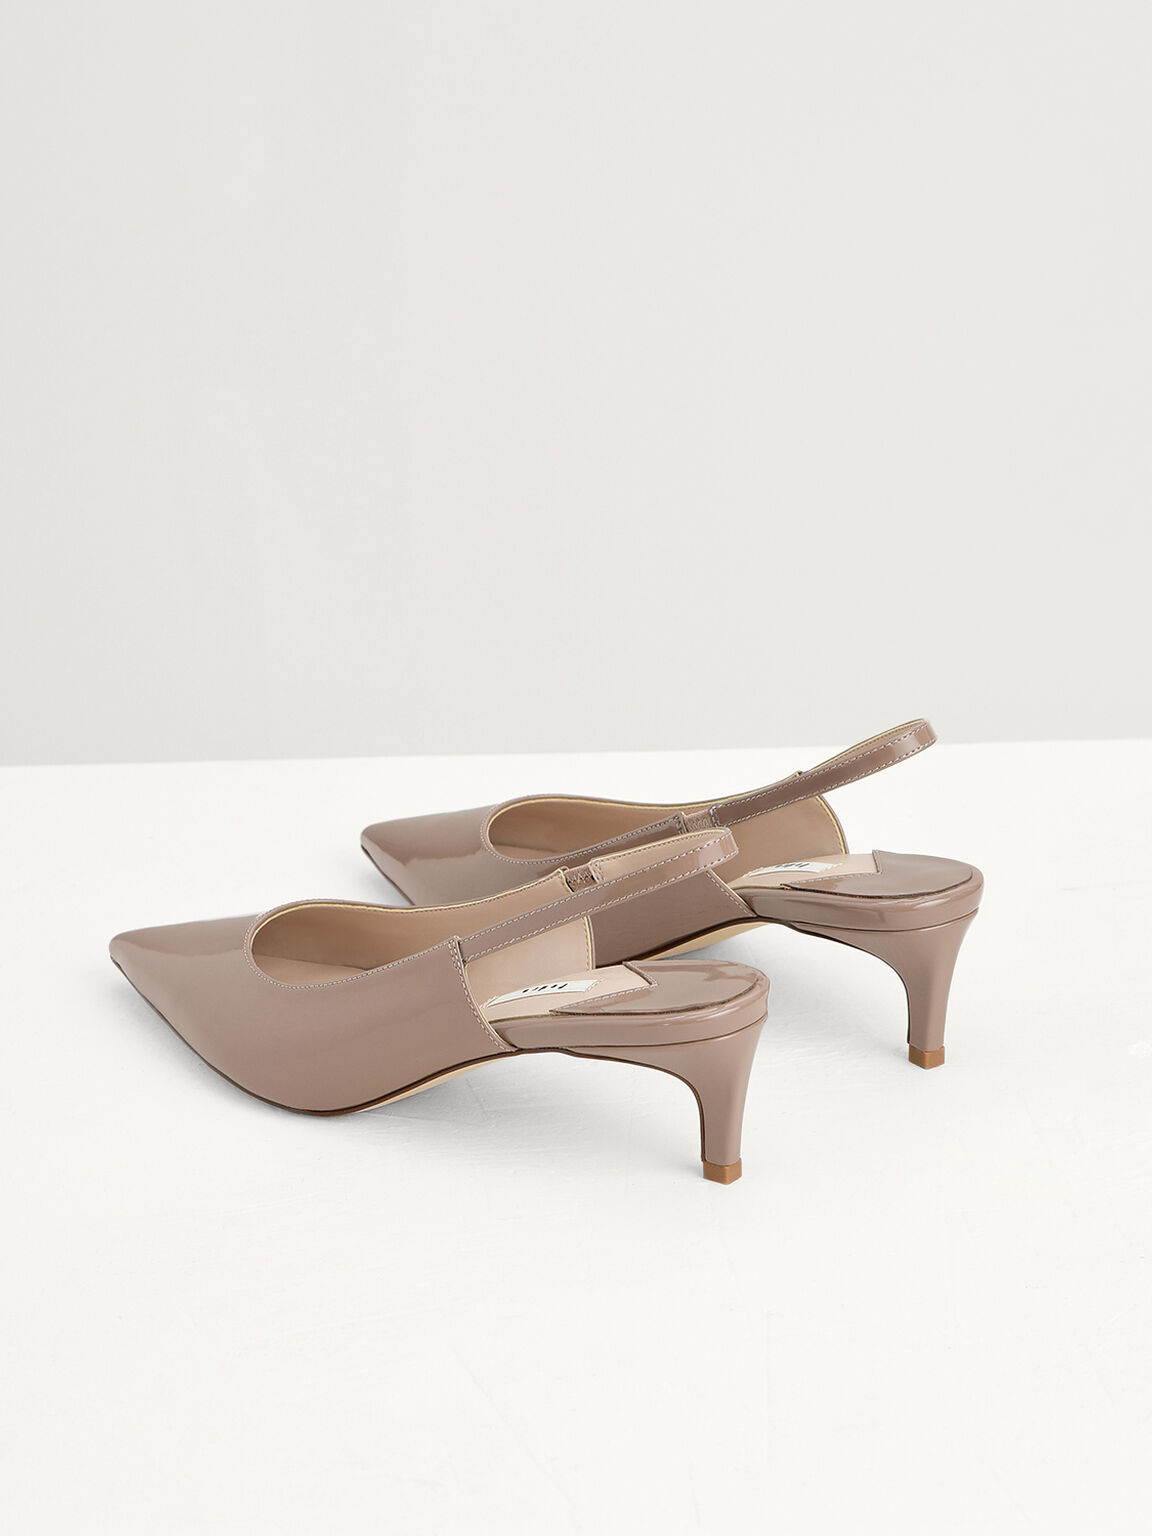 Patent Leather Slingback Pumps, Taupe, hi-res